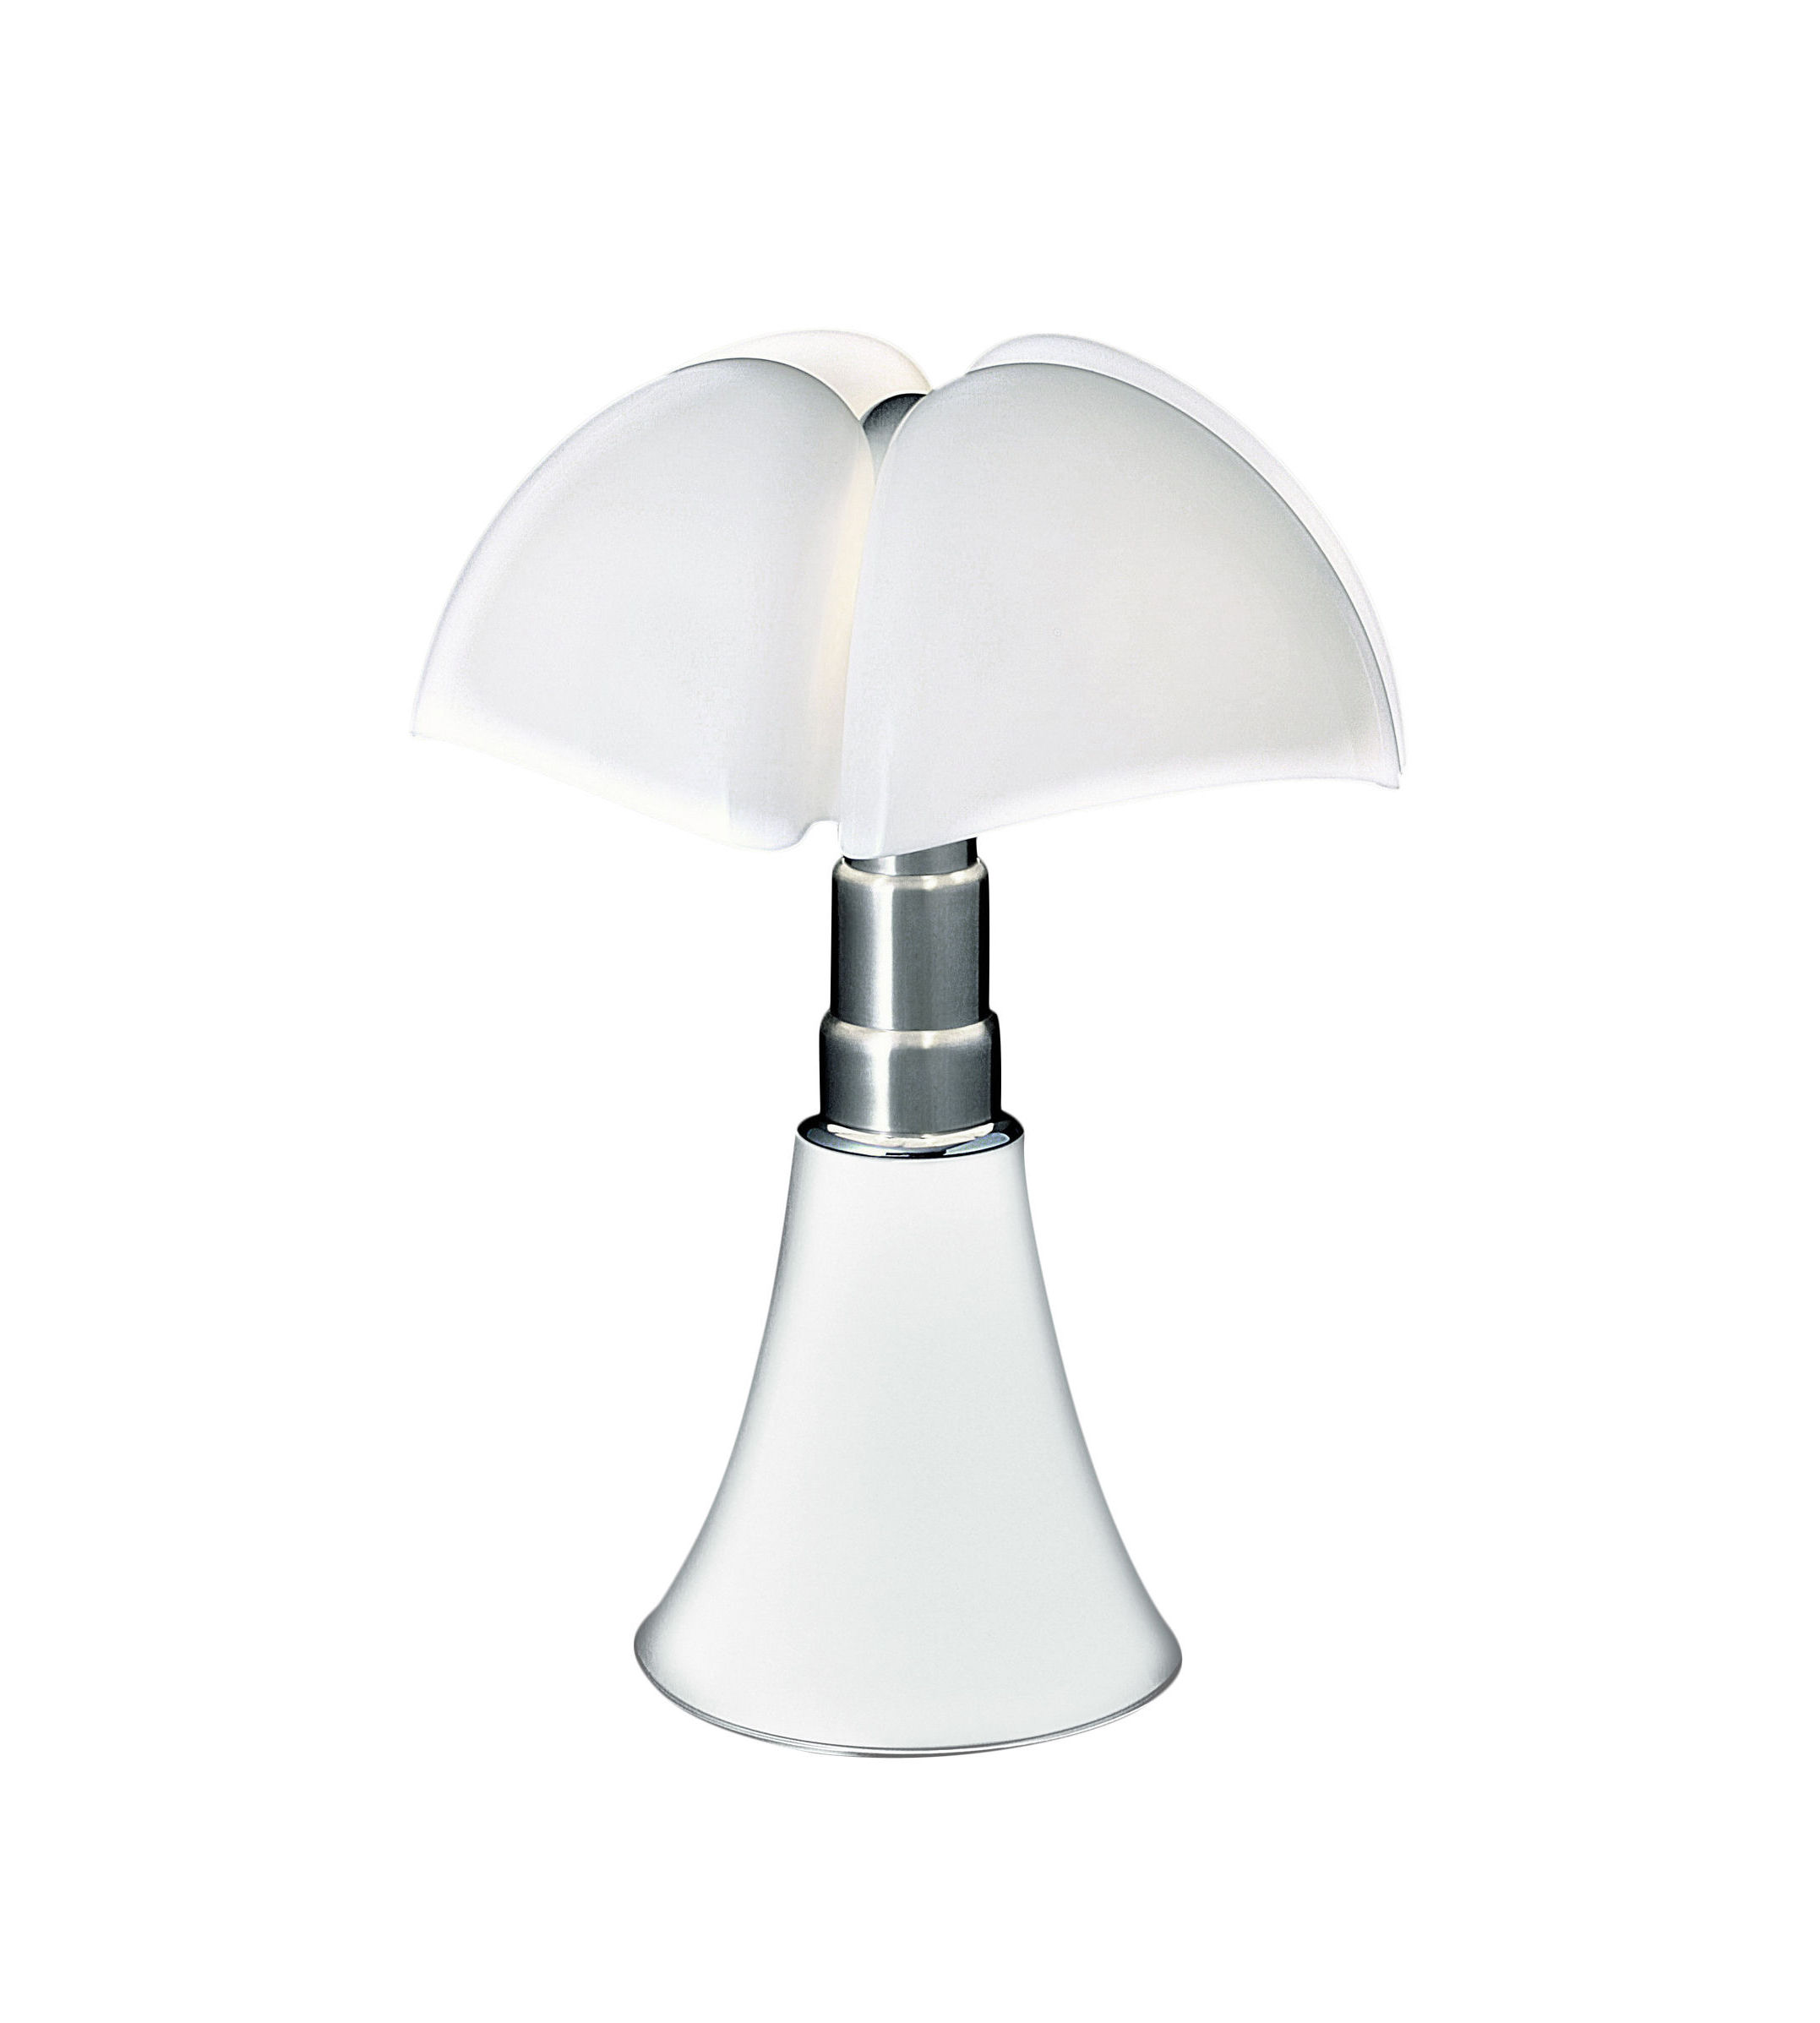 Lighting - Table Lamps - Minipipistrello LED Table lamp - LED / H 35 cm by Martinelli Luce - White - Galvanized steel, Lacquered aluminium, Opal methacrylate